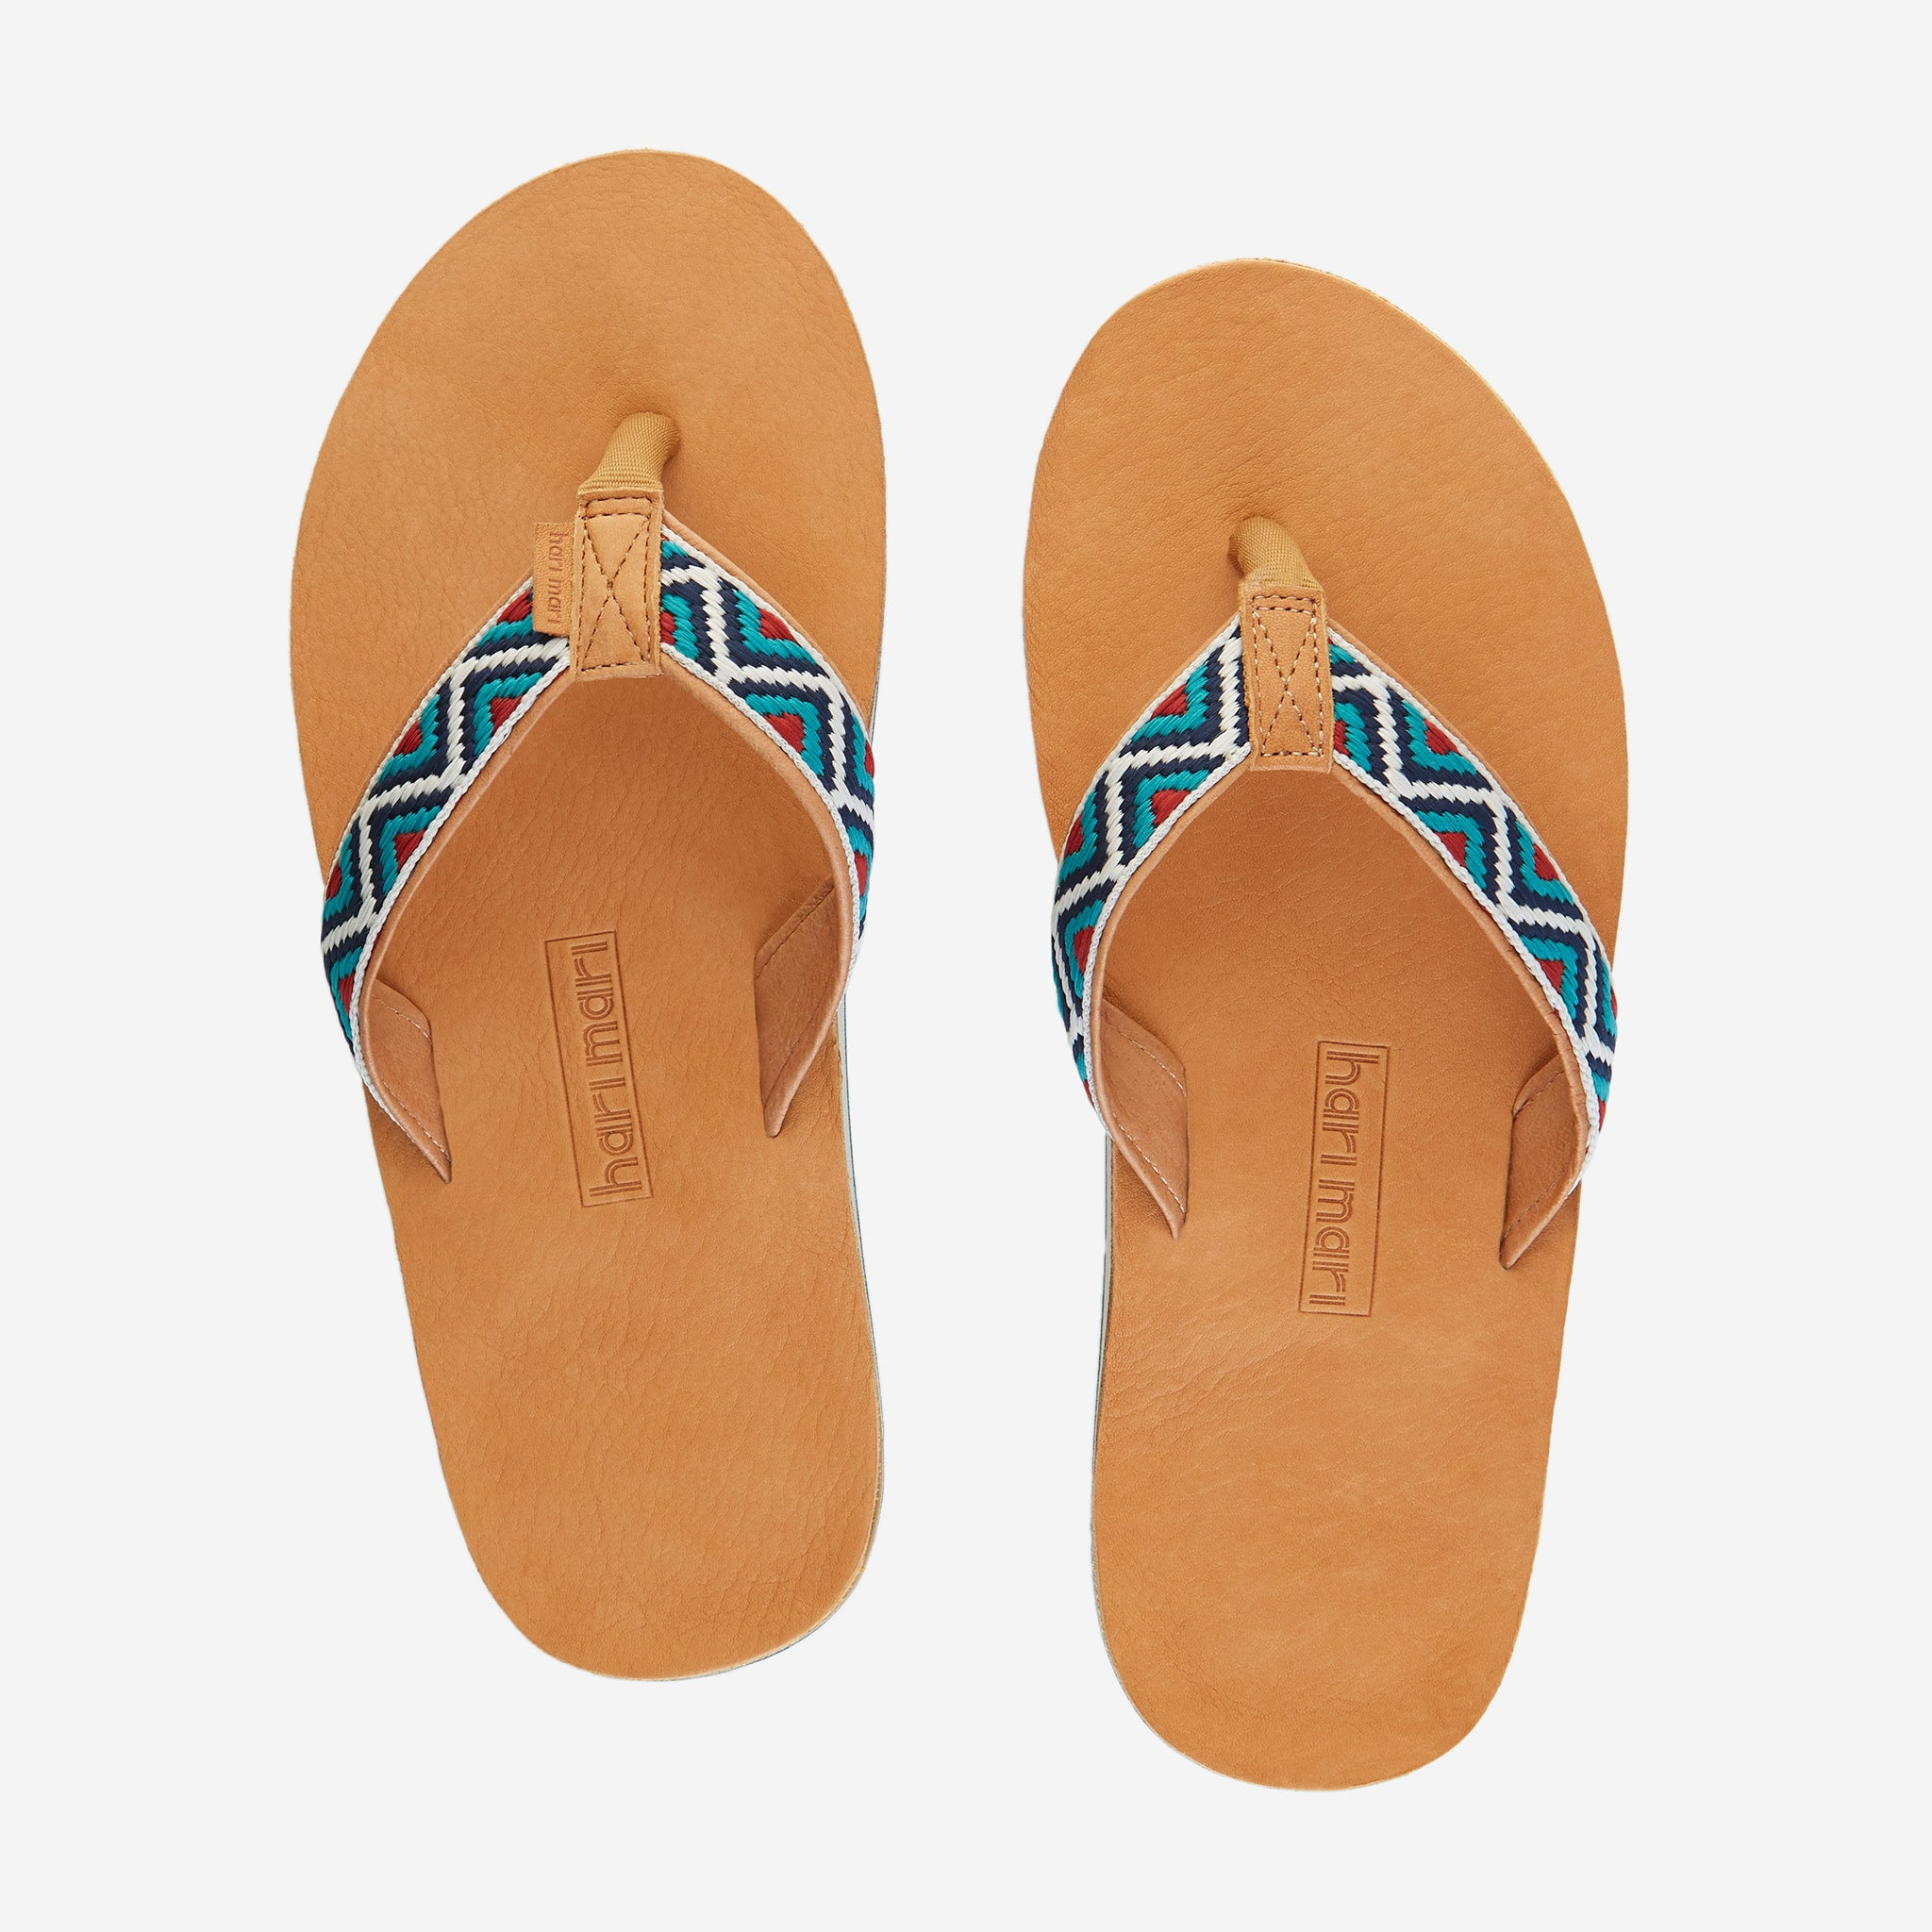 Hari Mari Men'a Fields Camino Flip Flops in wheat/multi on white background